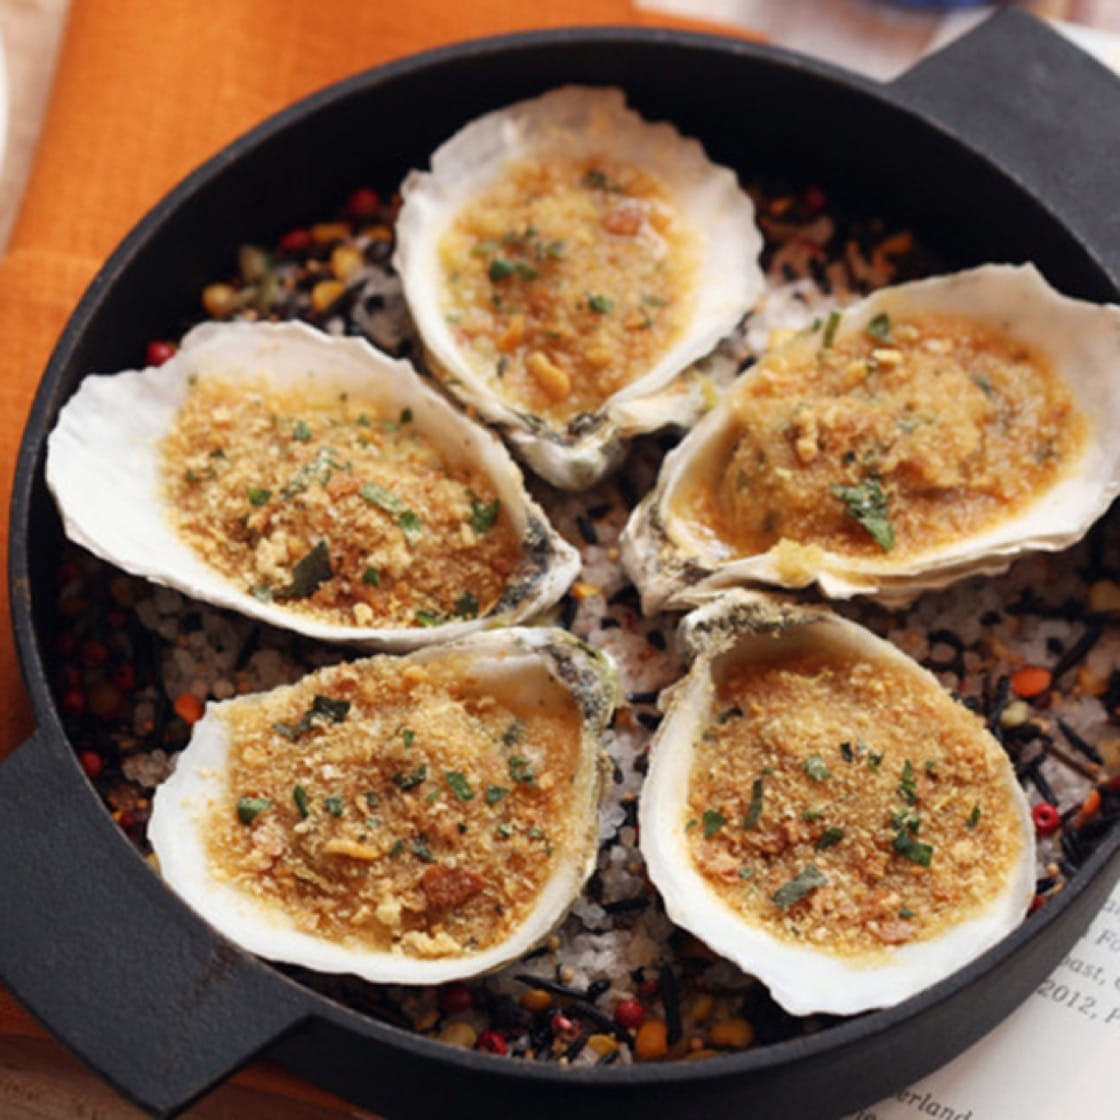 Oysters Rockefeller at Neptune Oyster.